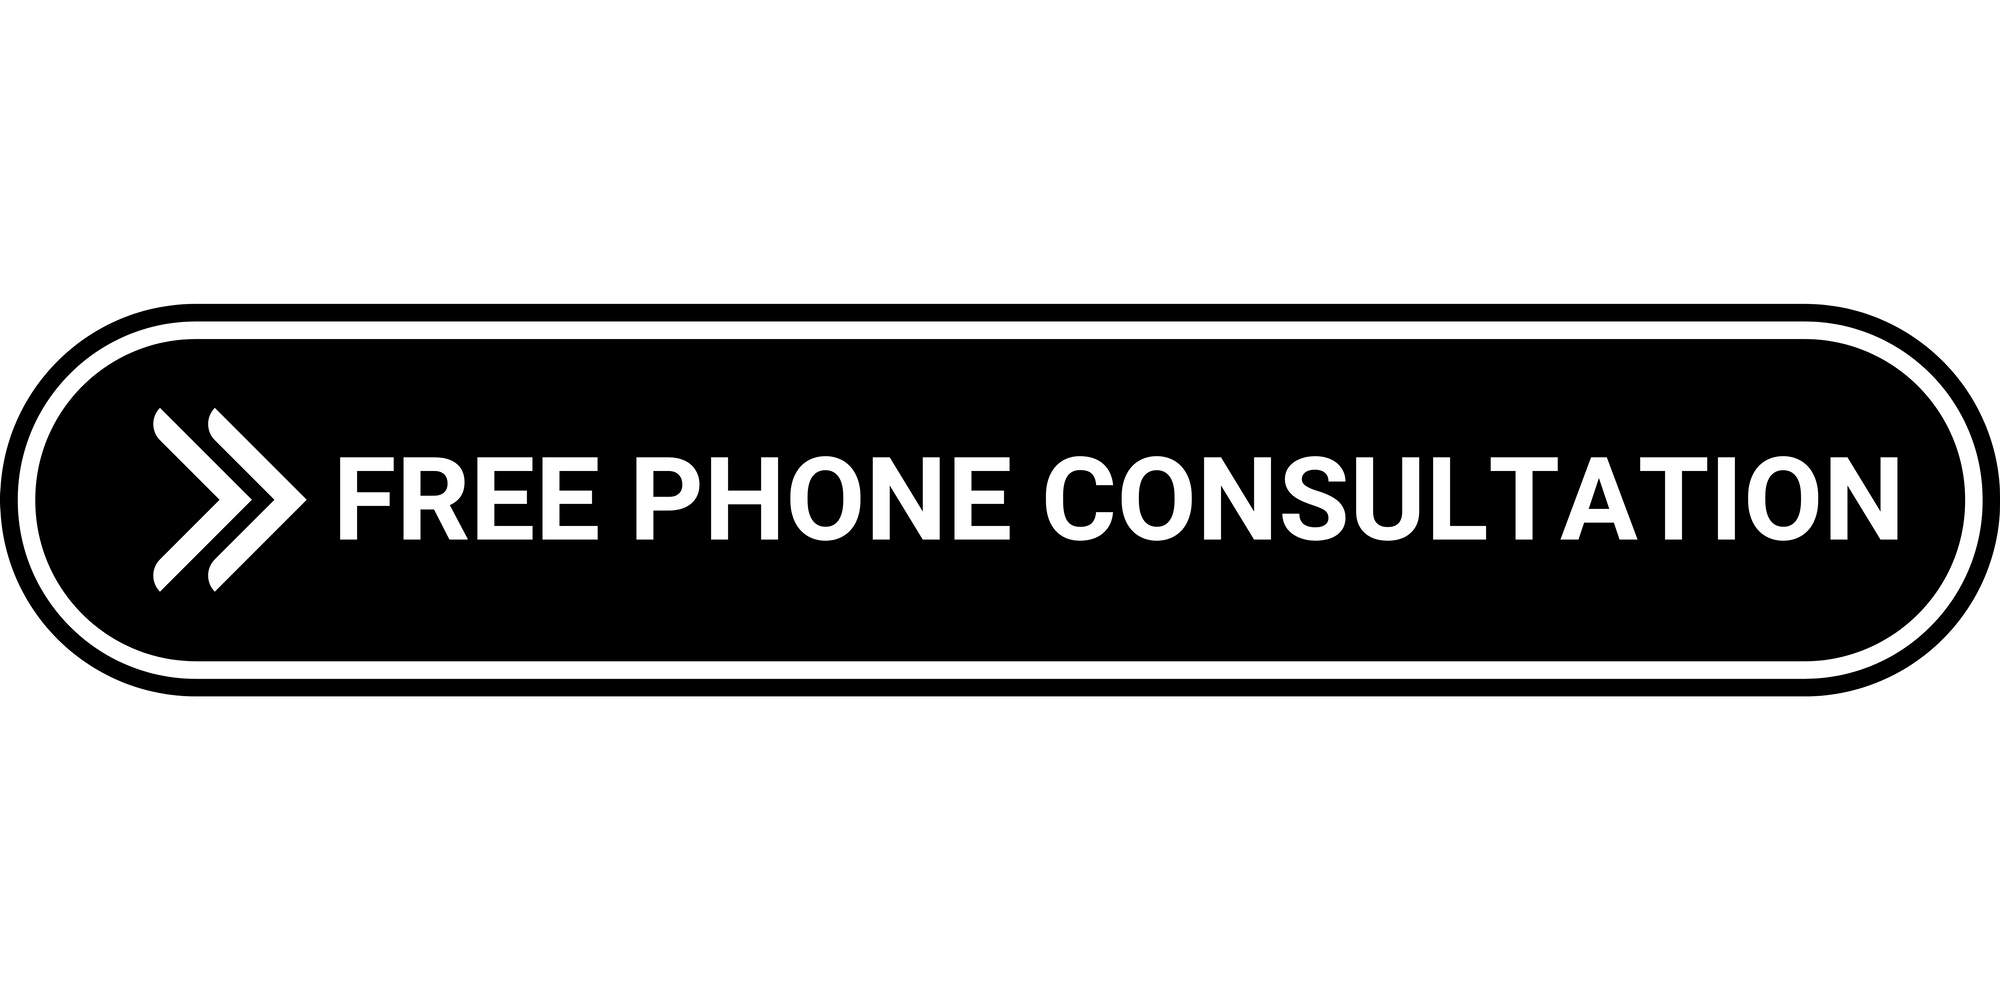 Click to schedule a free phone consultation button.